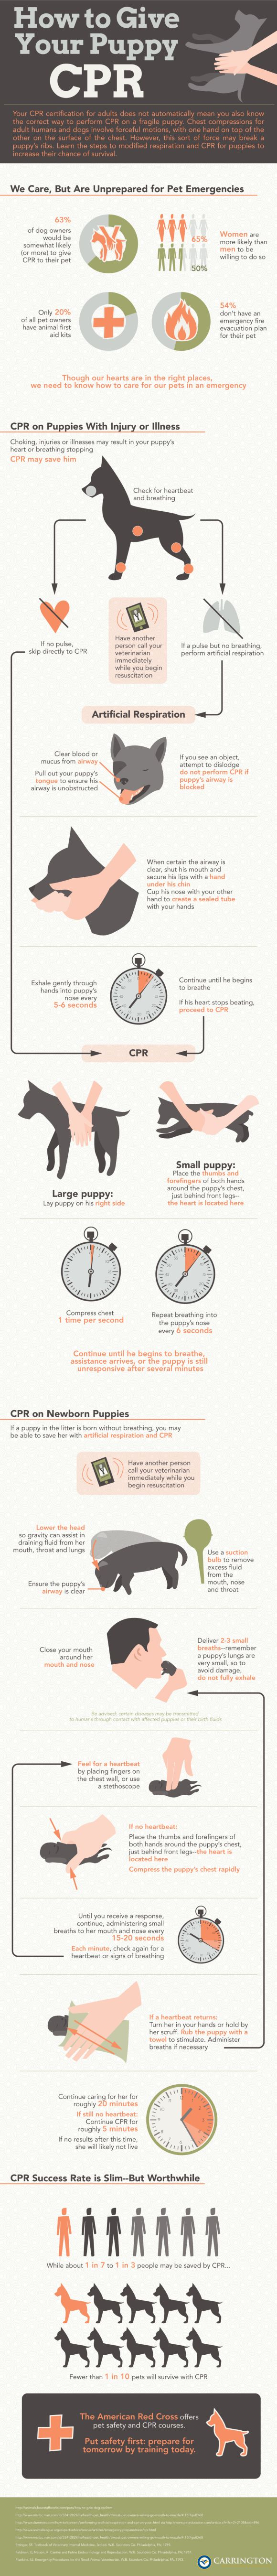 How to give your puppy CPR. Absolutely love this - helpful info- I did not know- hope no one ever needs to do this - but just in case!